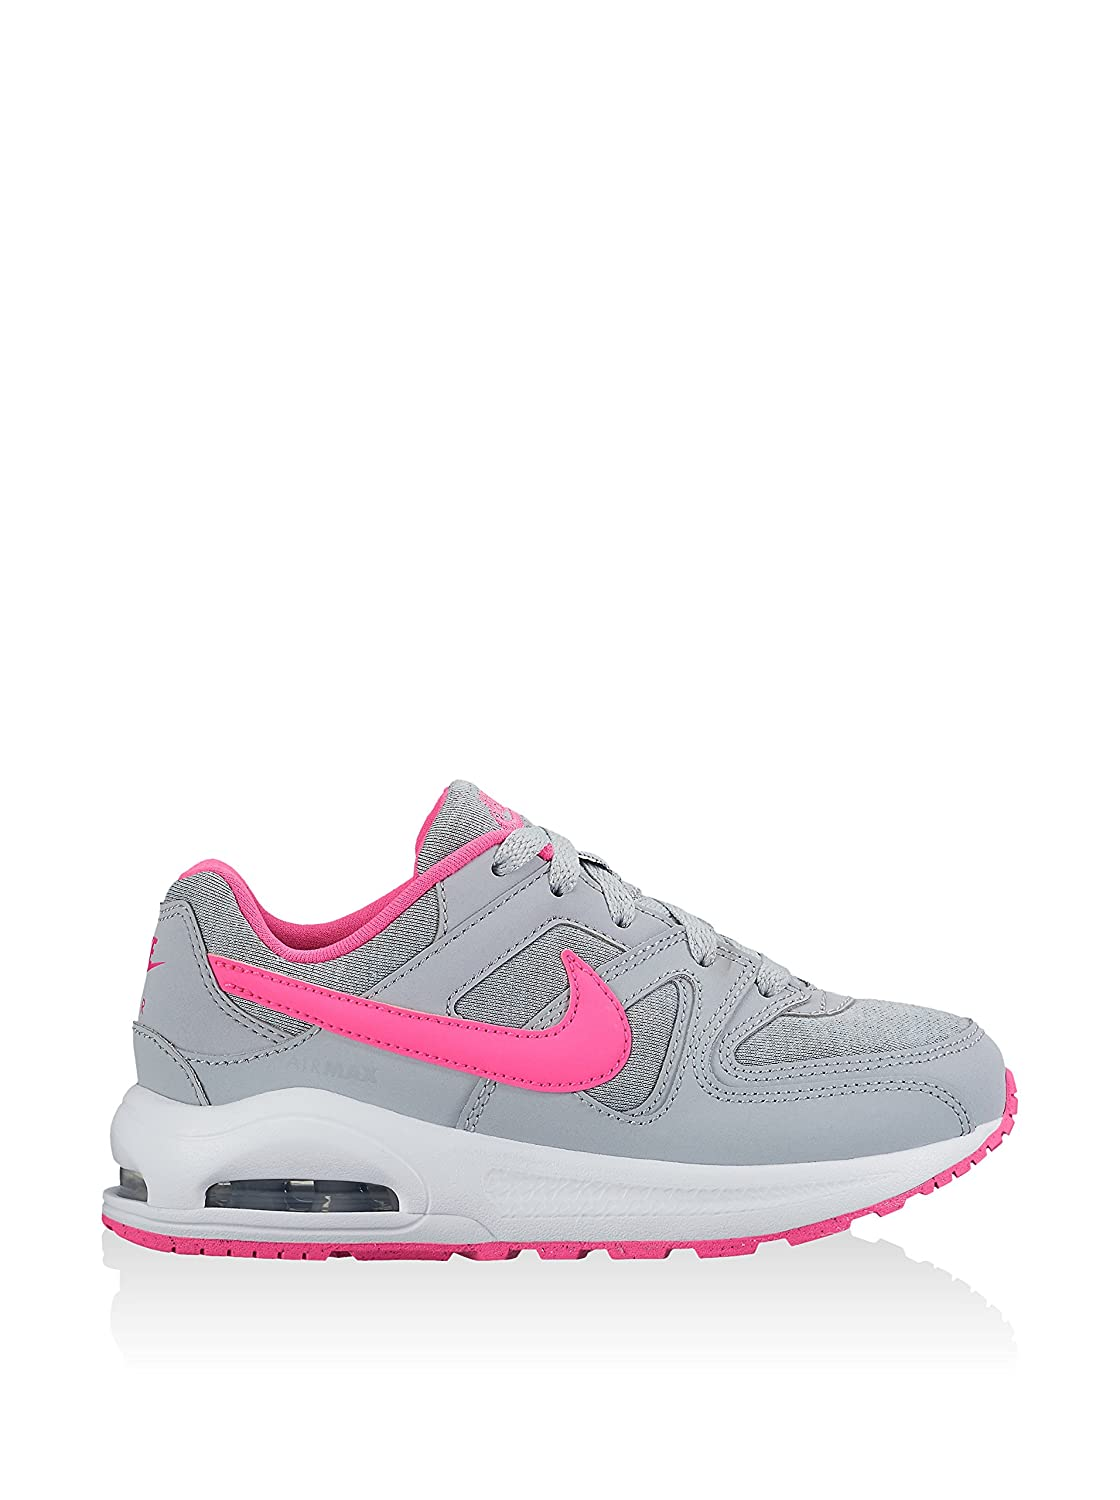 Nike Air Max Command Flex (PS), Sneakers for babies, Grey